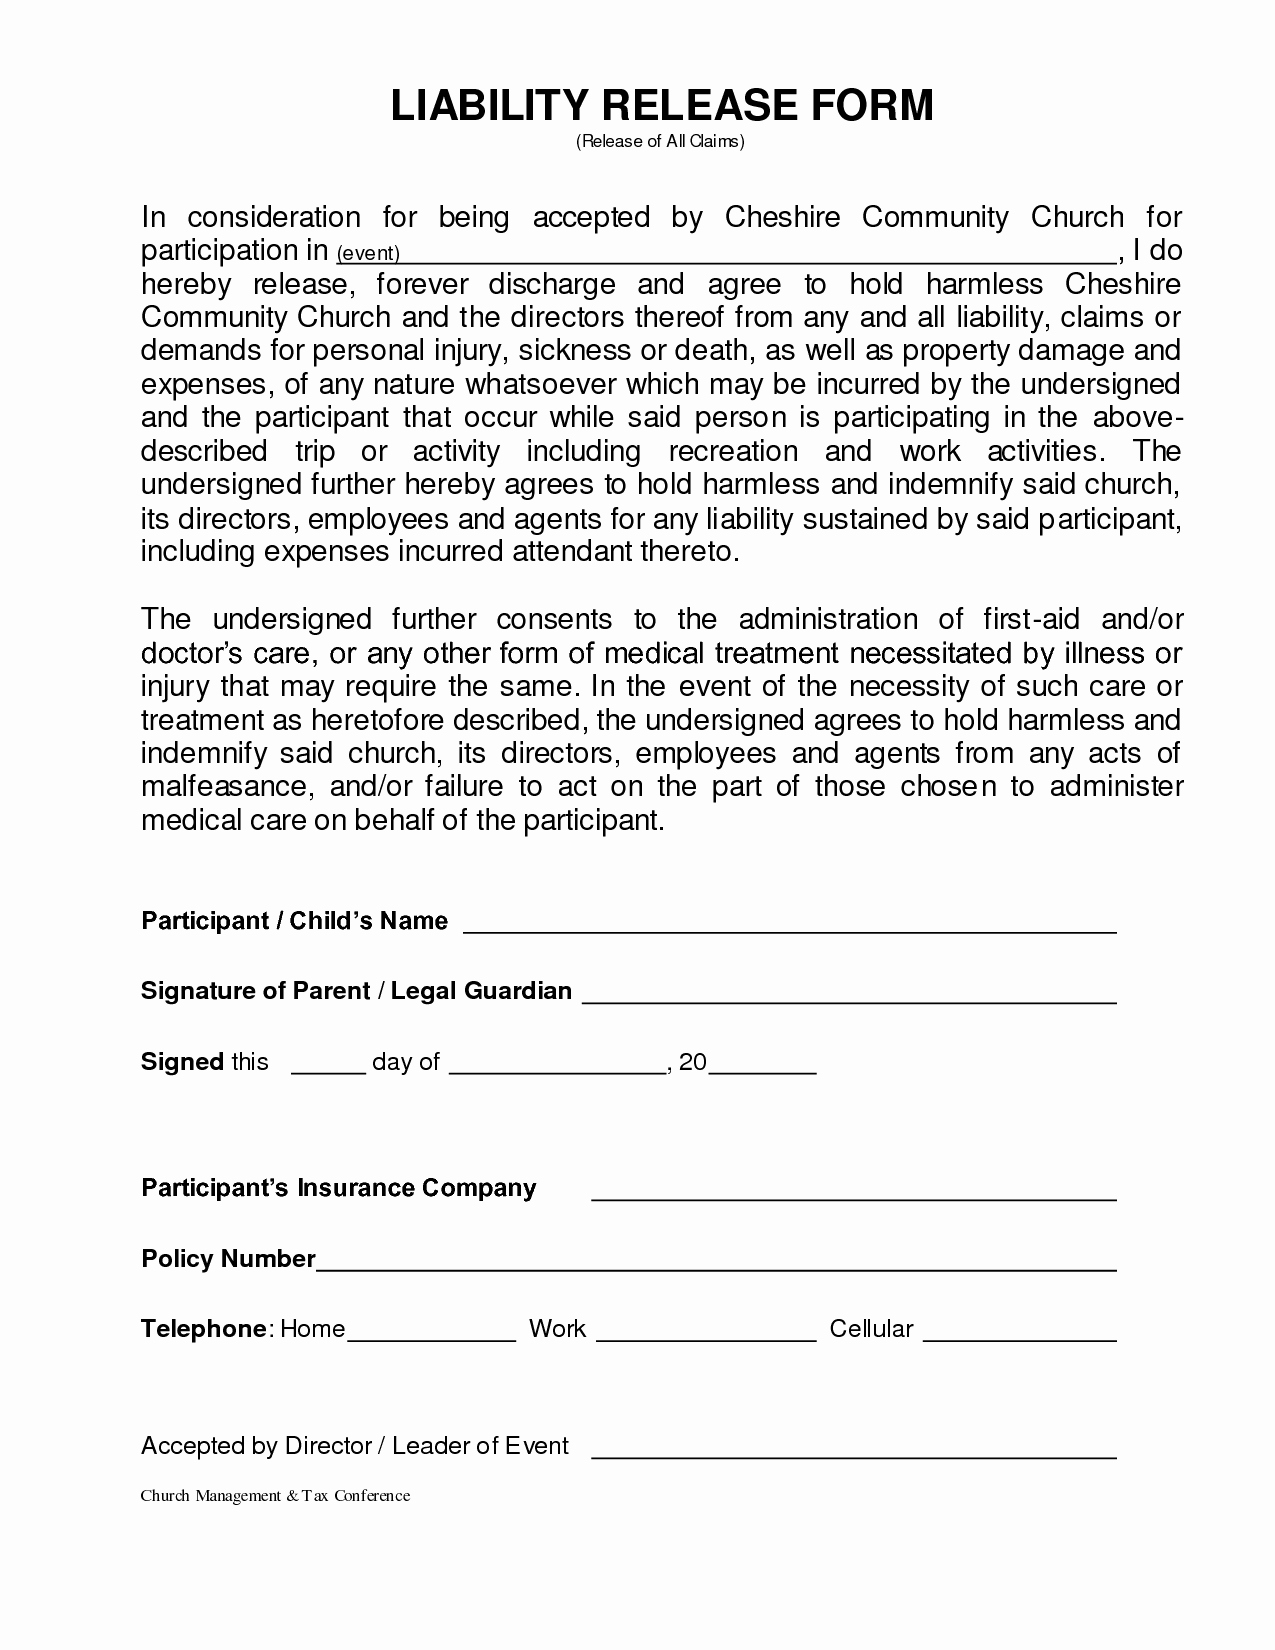 Personal Property Release form Template Lovely 26 Of Personal Liability Release form Template